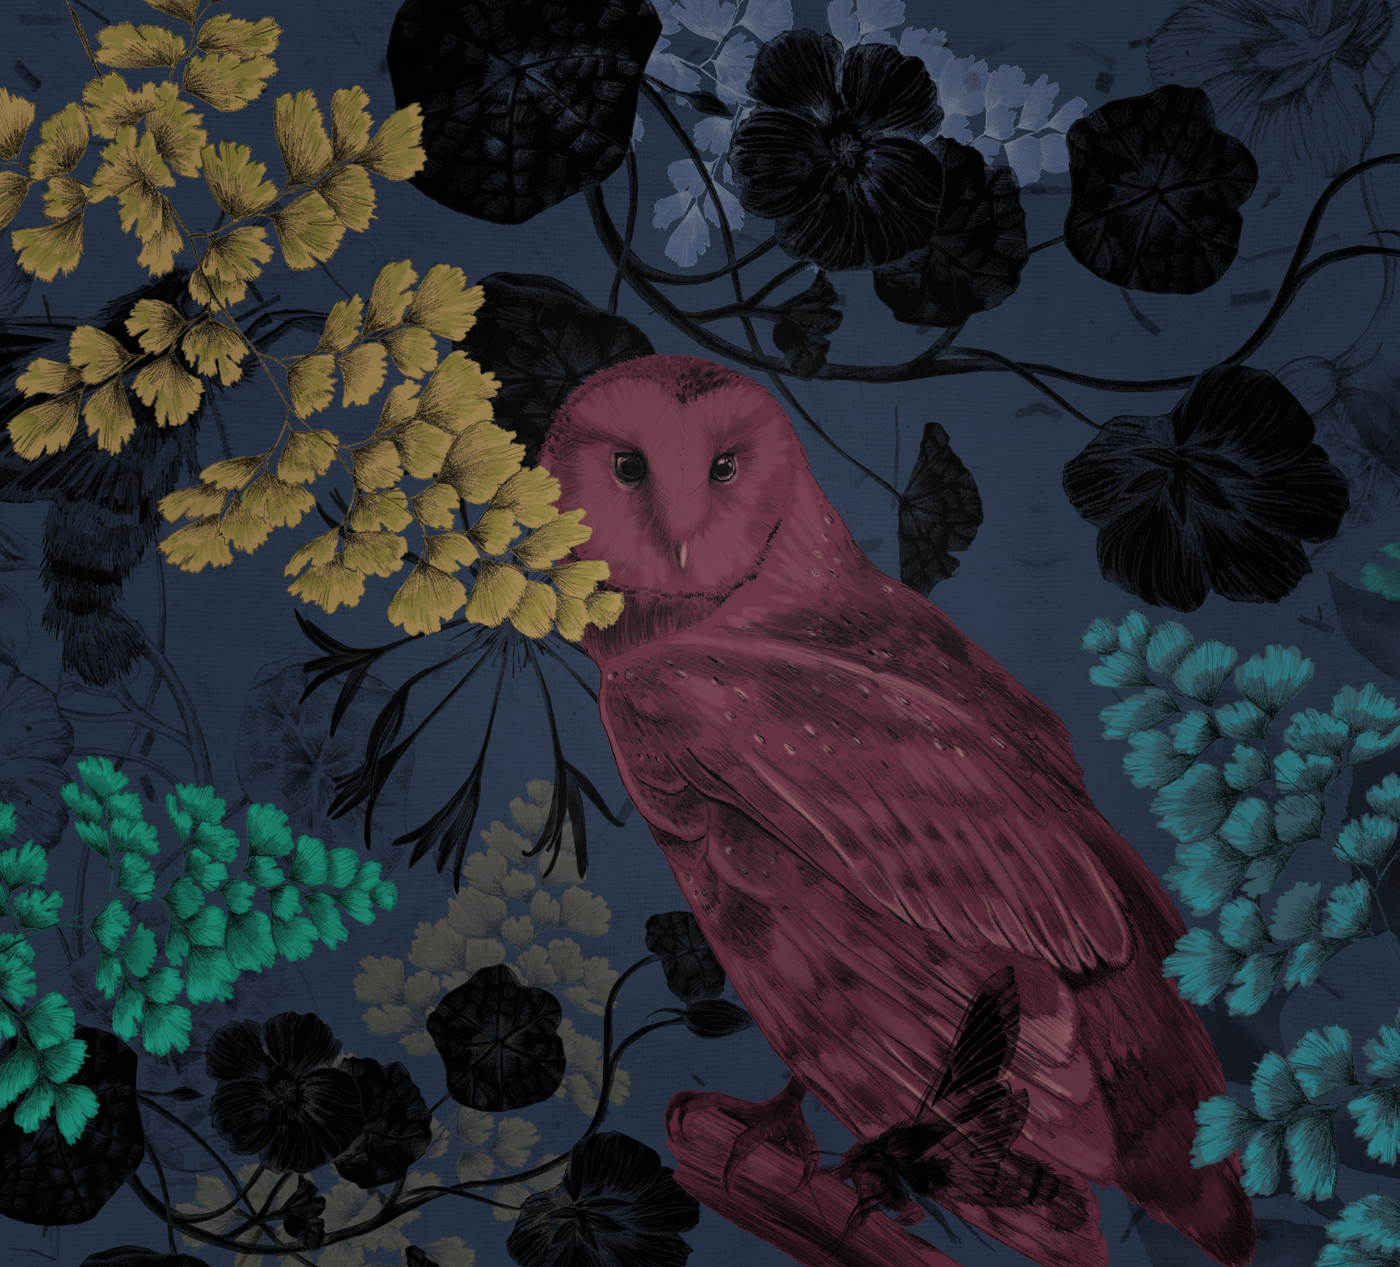 fig 2. Detail of the illustrated barn owl in foliage